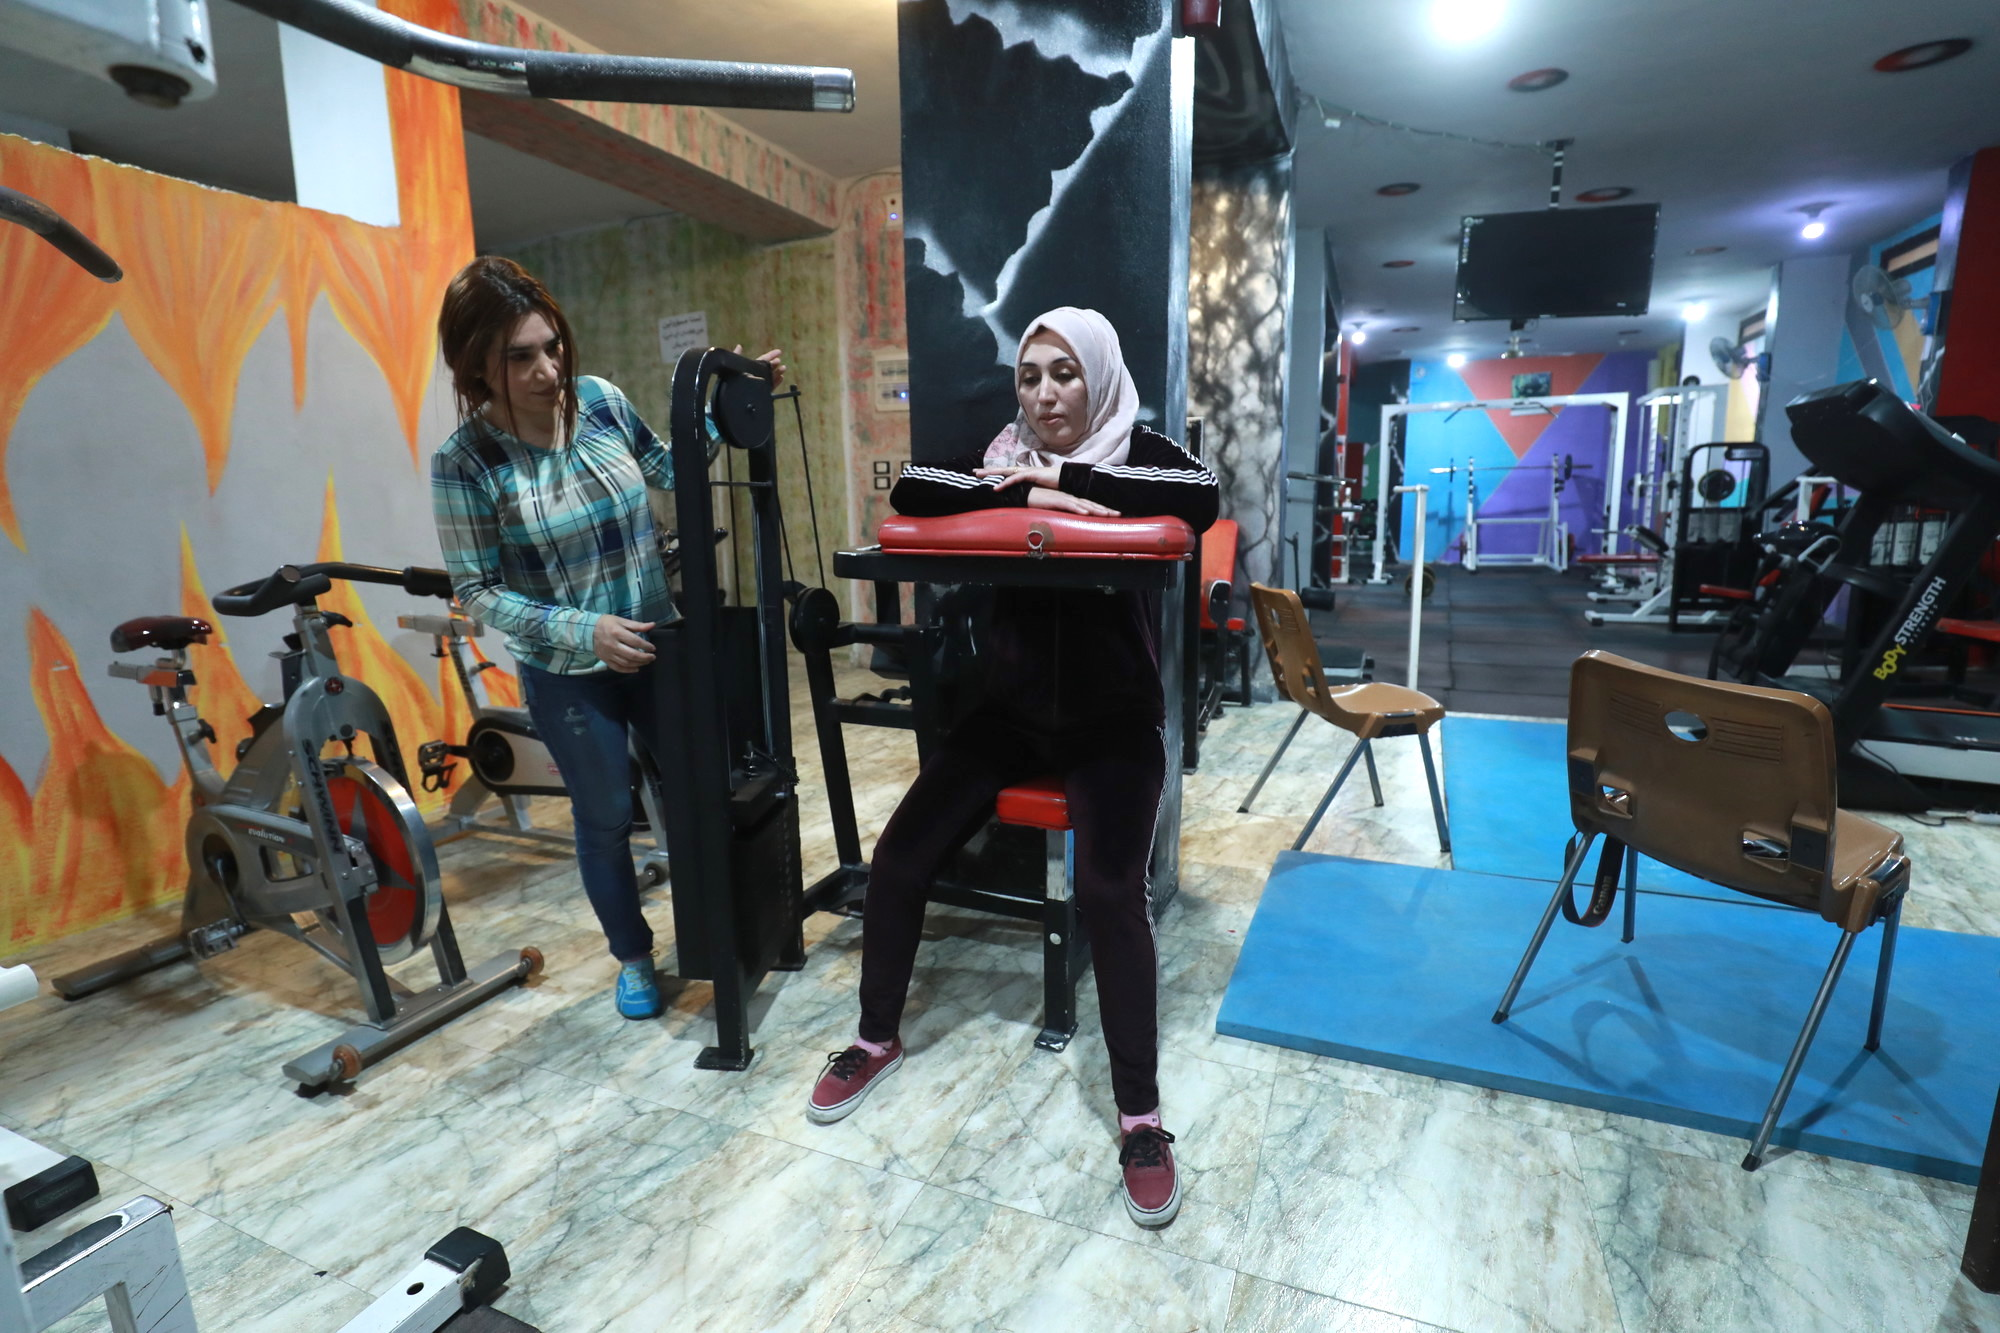 Woman exercises in a gym.